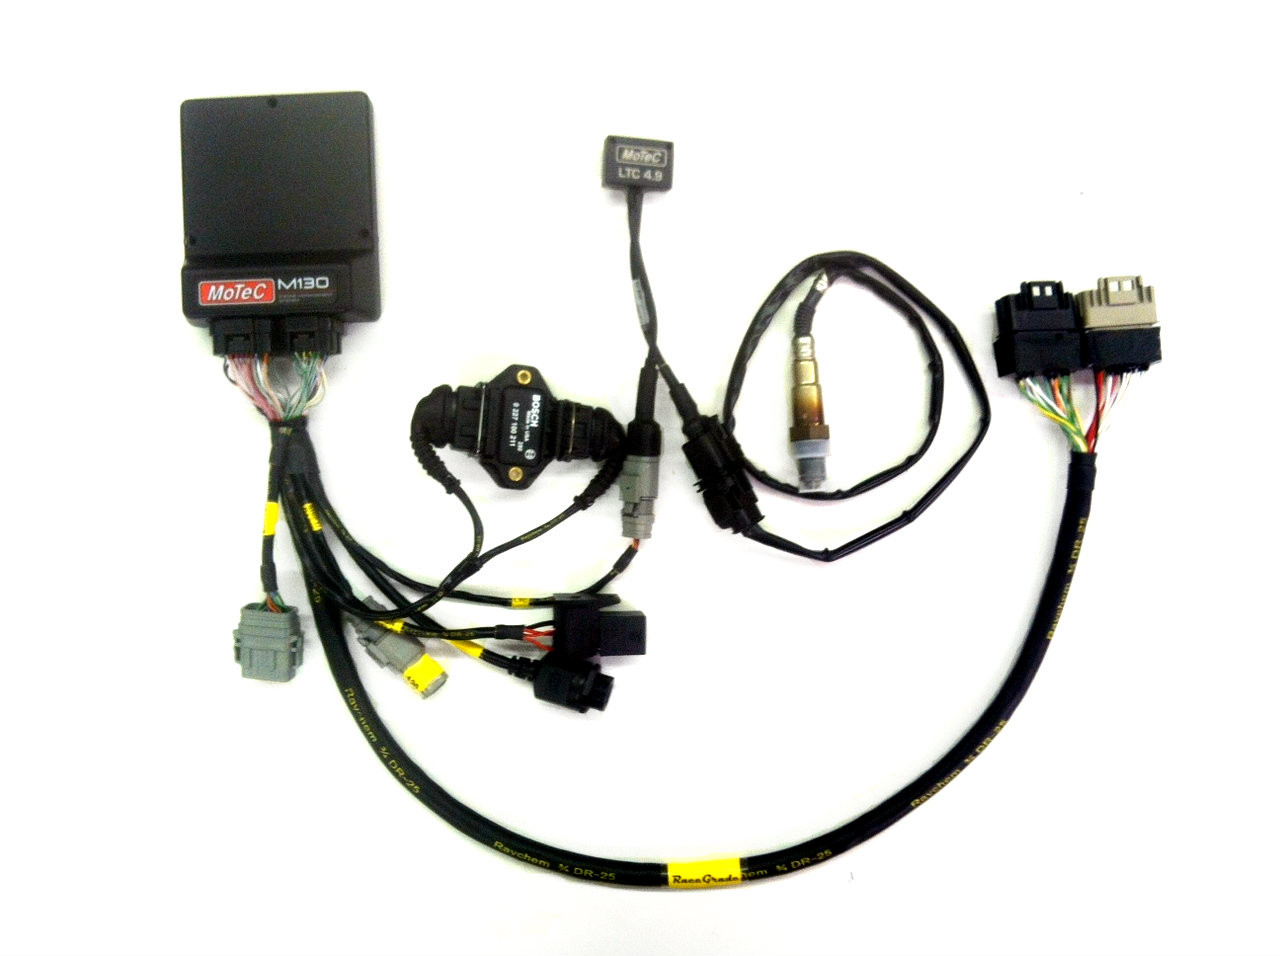 small resolution of 04 zx10 wiring diagram wiring library 2003 r1 bike colors 04 zx10 wiring diagram wiring 2003